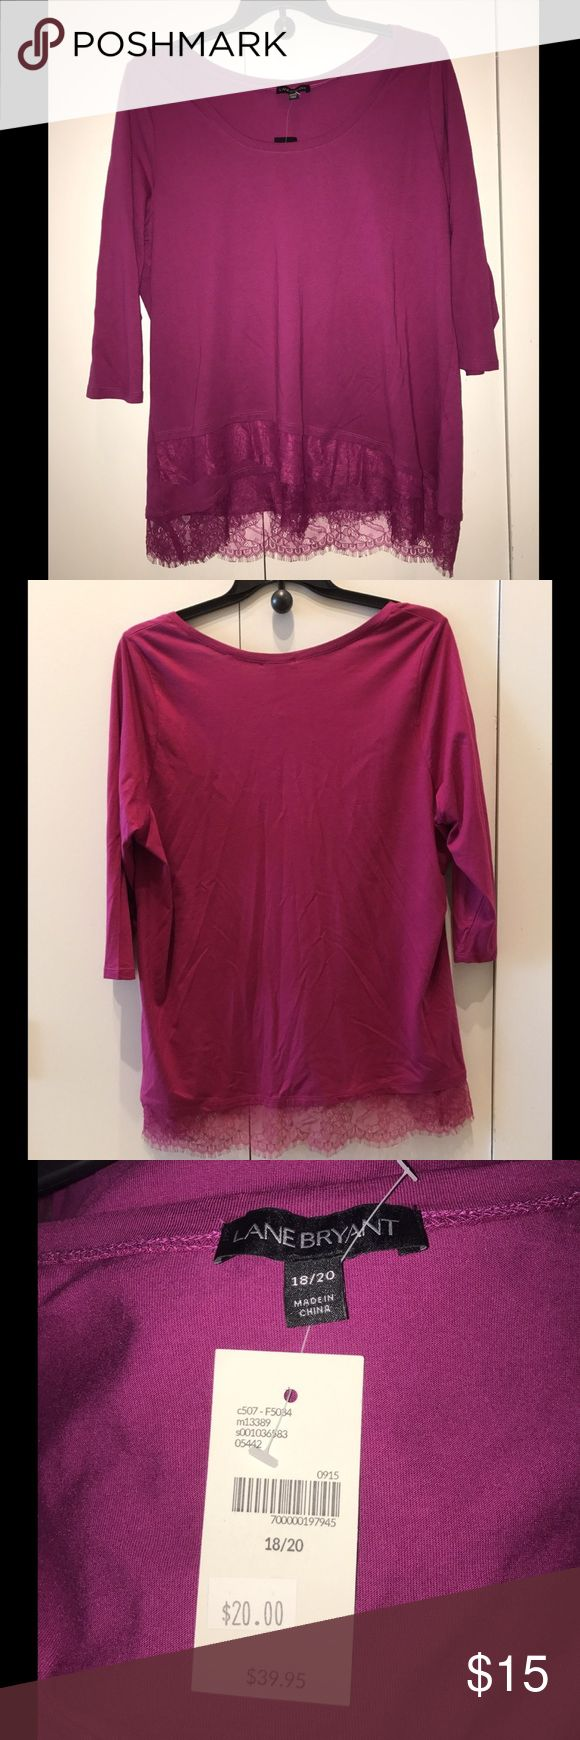 Fushia 3/4 sleeve crew neck shirt Never worn. Lace lining the bottom. Size 18/20. Bundle for discount! Lane Bryant Tops Tunics